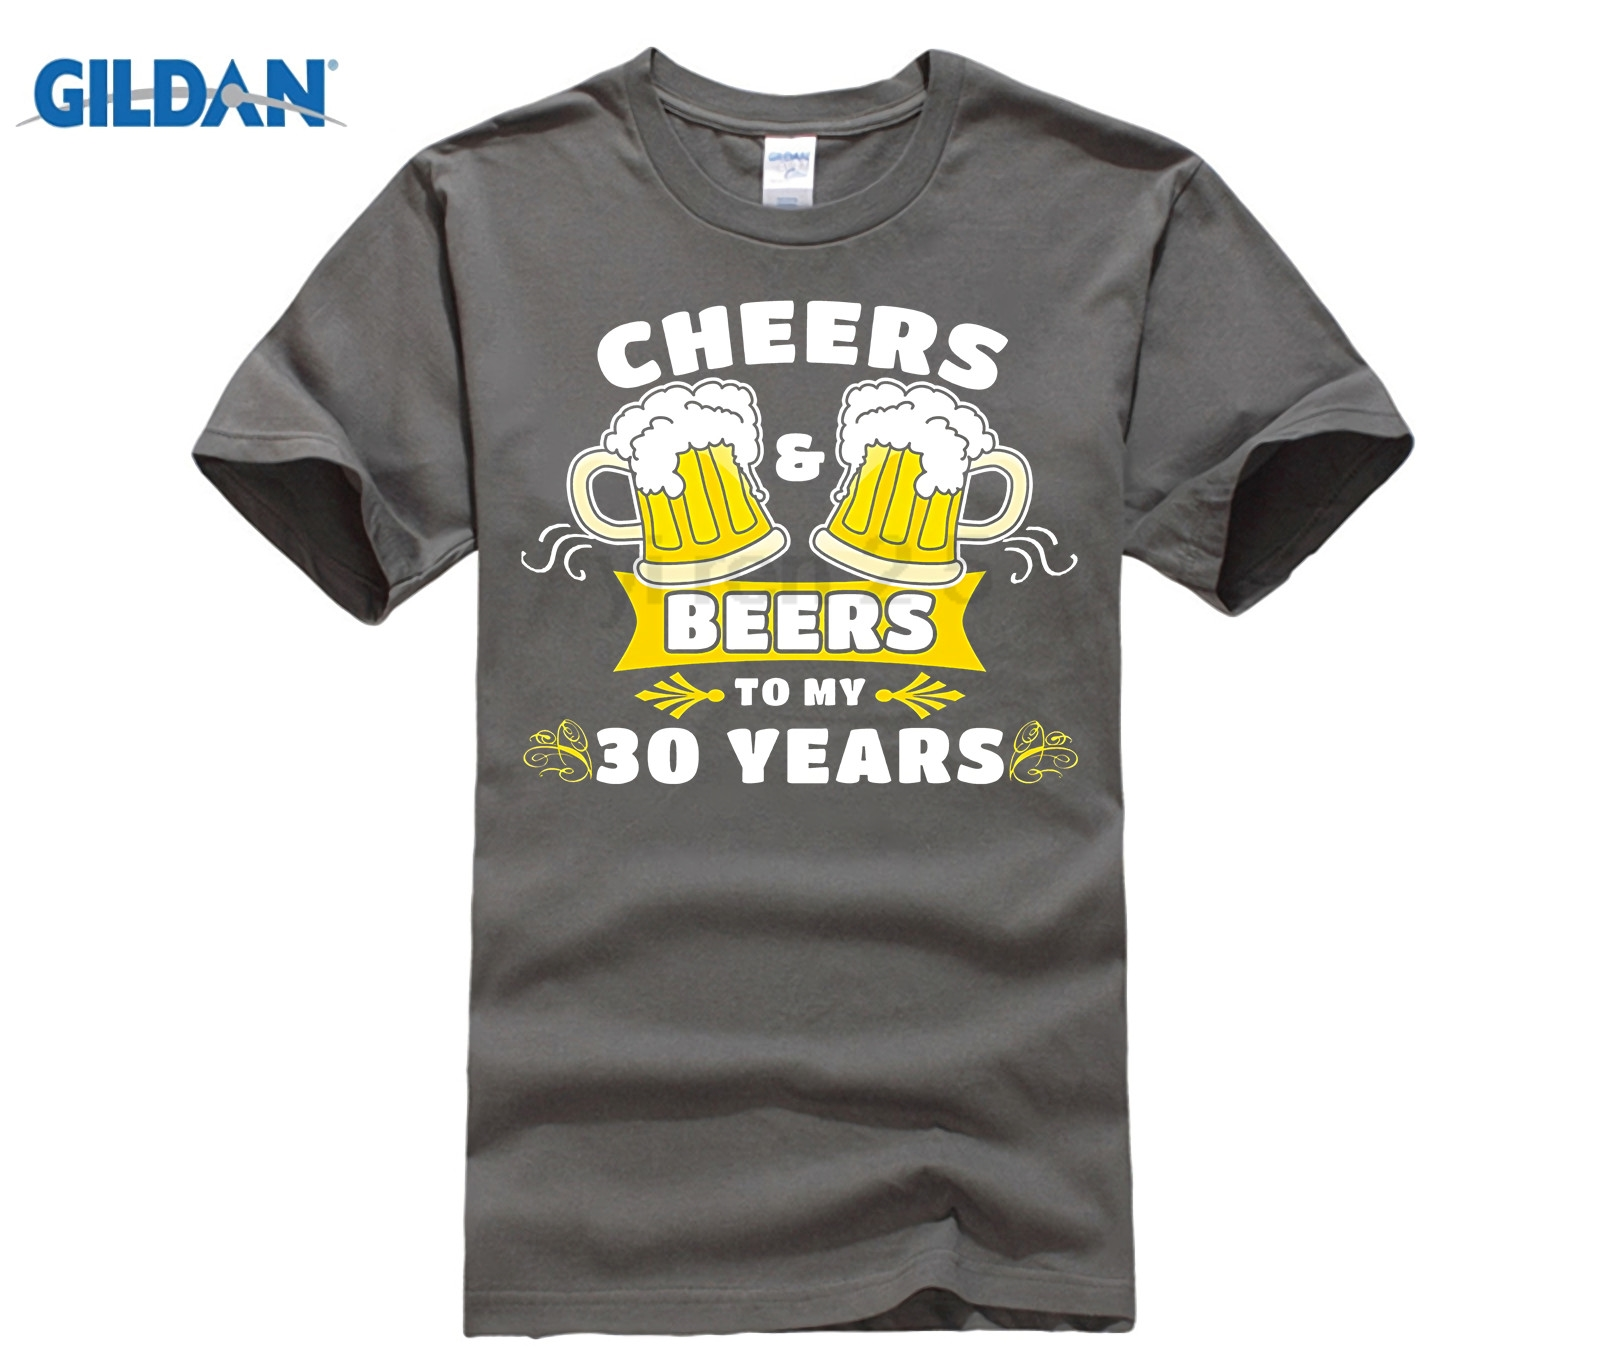 2fe5273cc GILDAN Cheers And Beers To My 30 Years T Shirt 30th Birthday Gift-in T-Shirts  from Men's Clothing & Accessories on Aliexpress.com | Alibaba Group